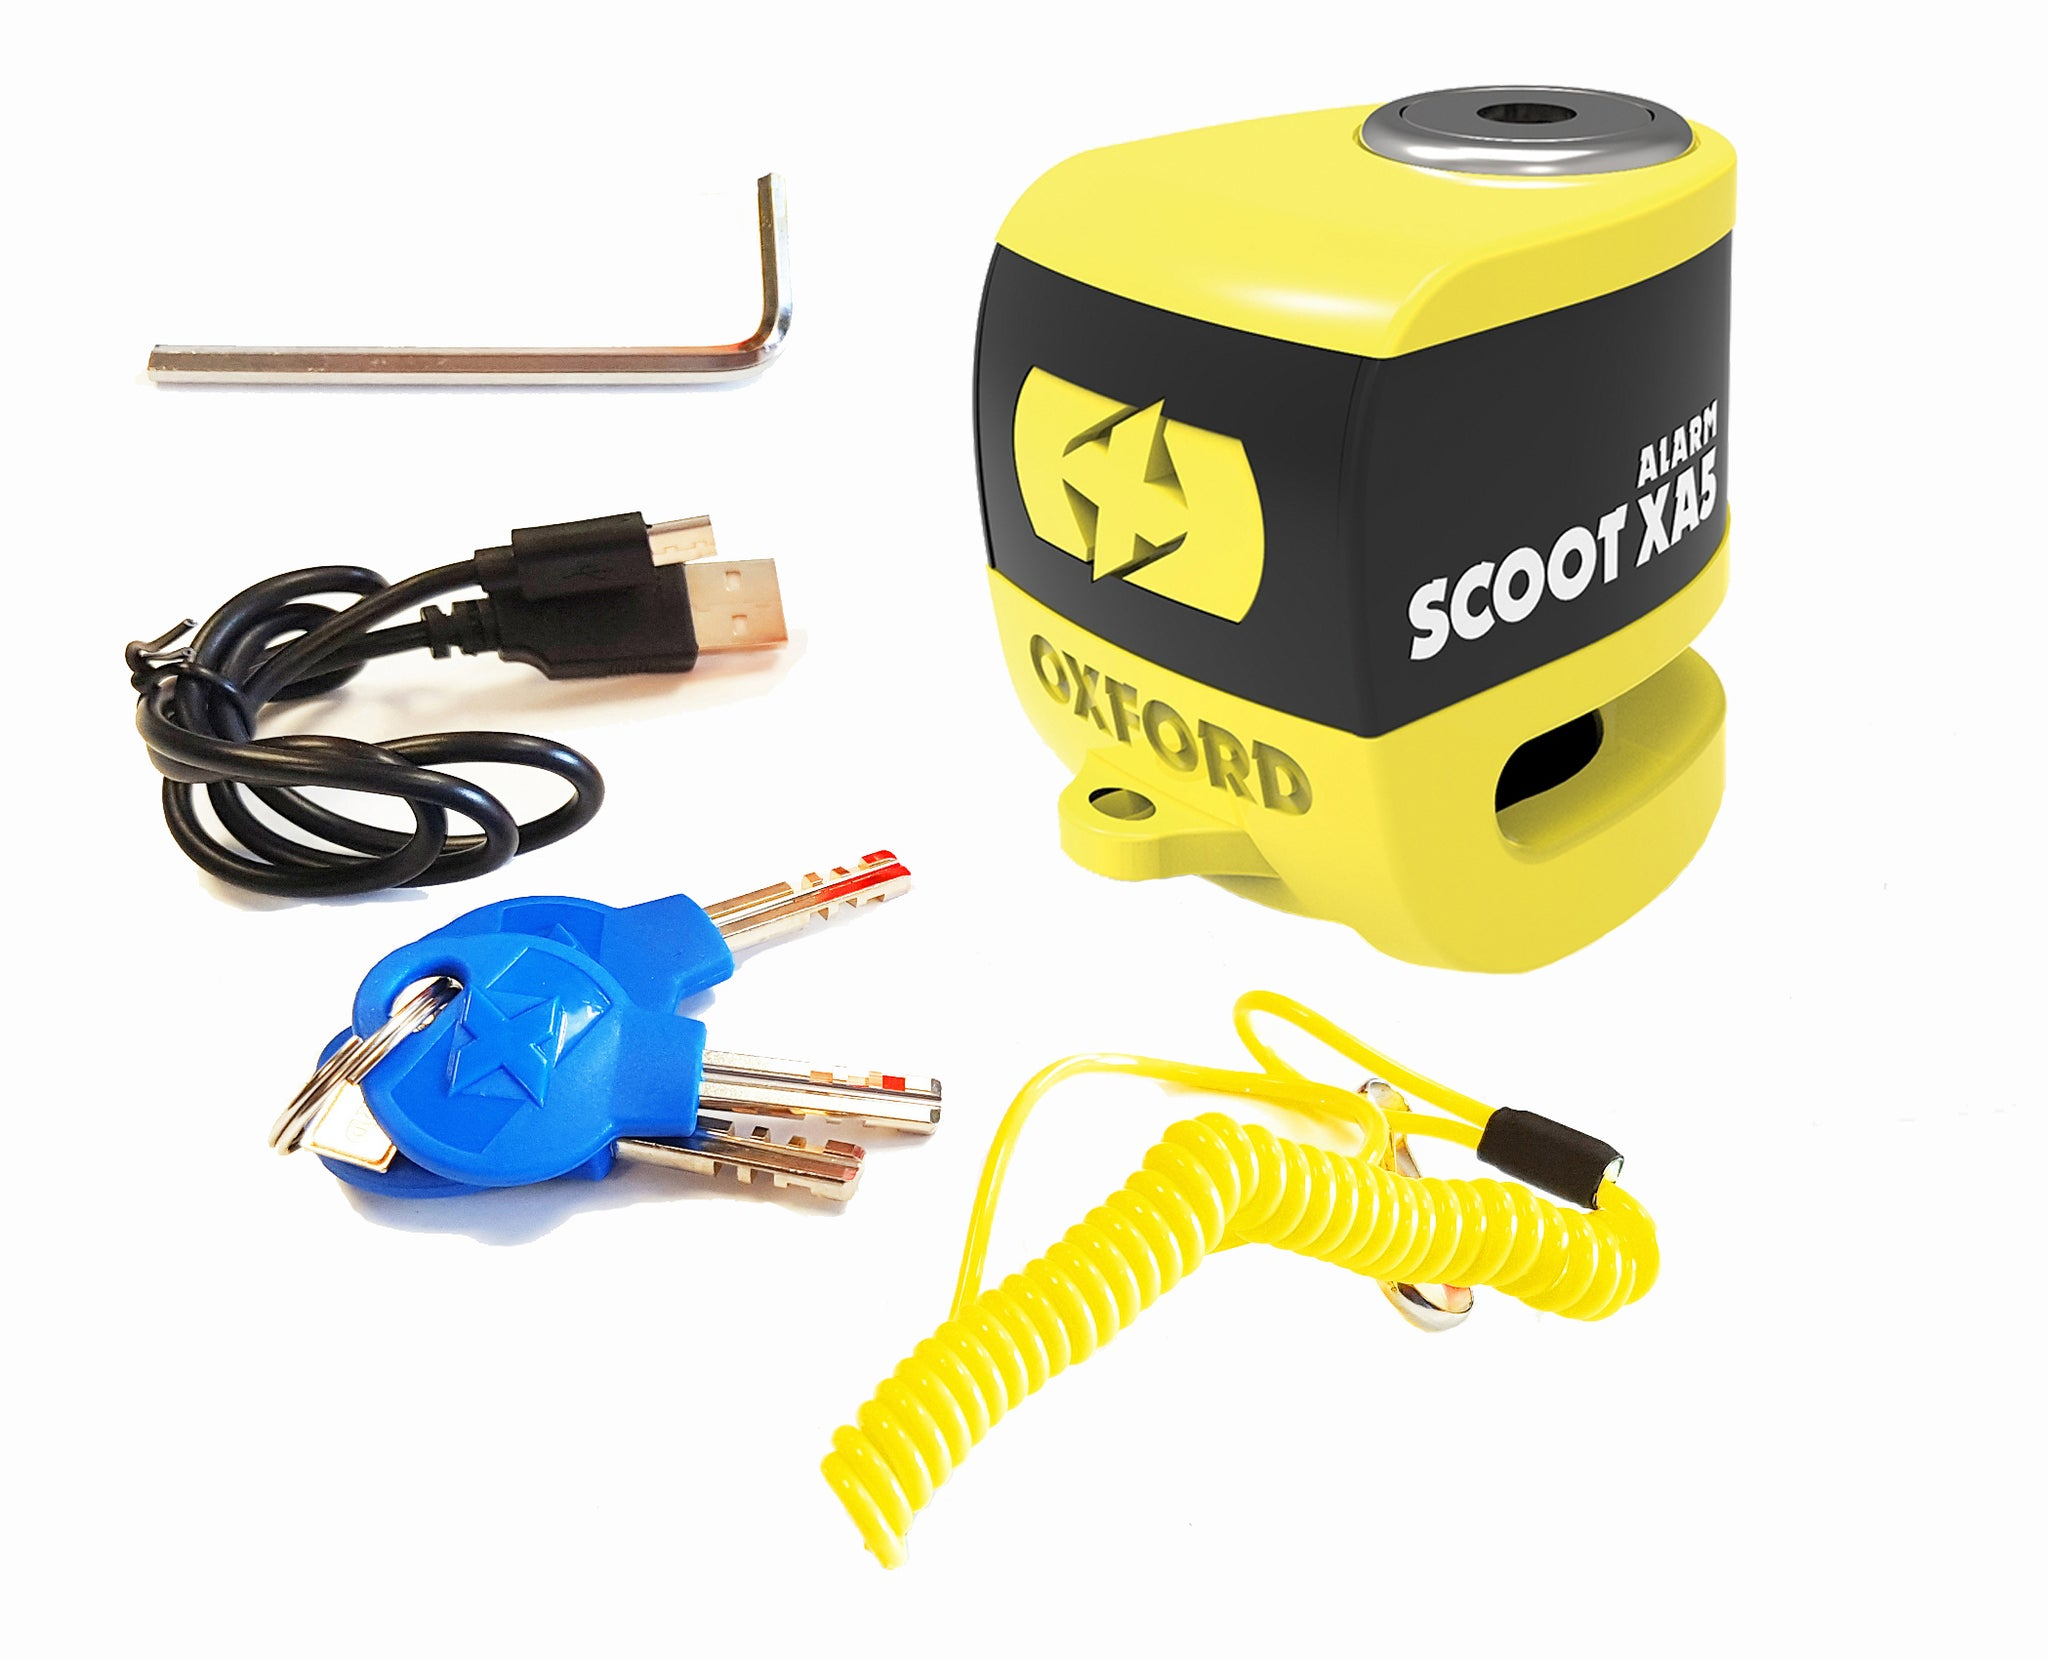 Mondial Hps 125 Oxford SCOOT XA5 LK287 Security Motorbike Yellow Disc Lock